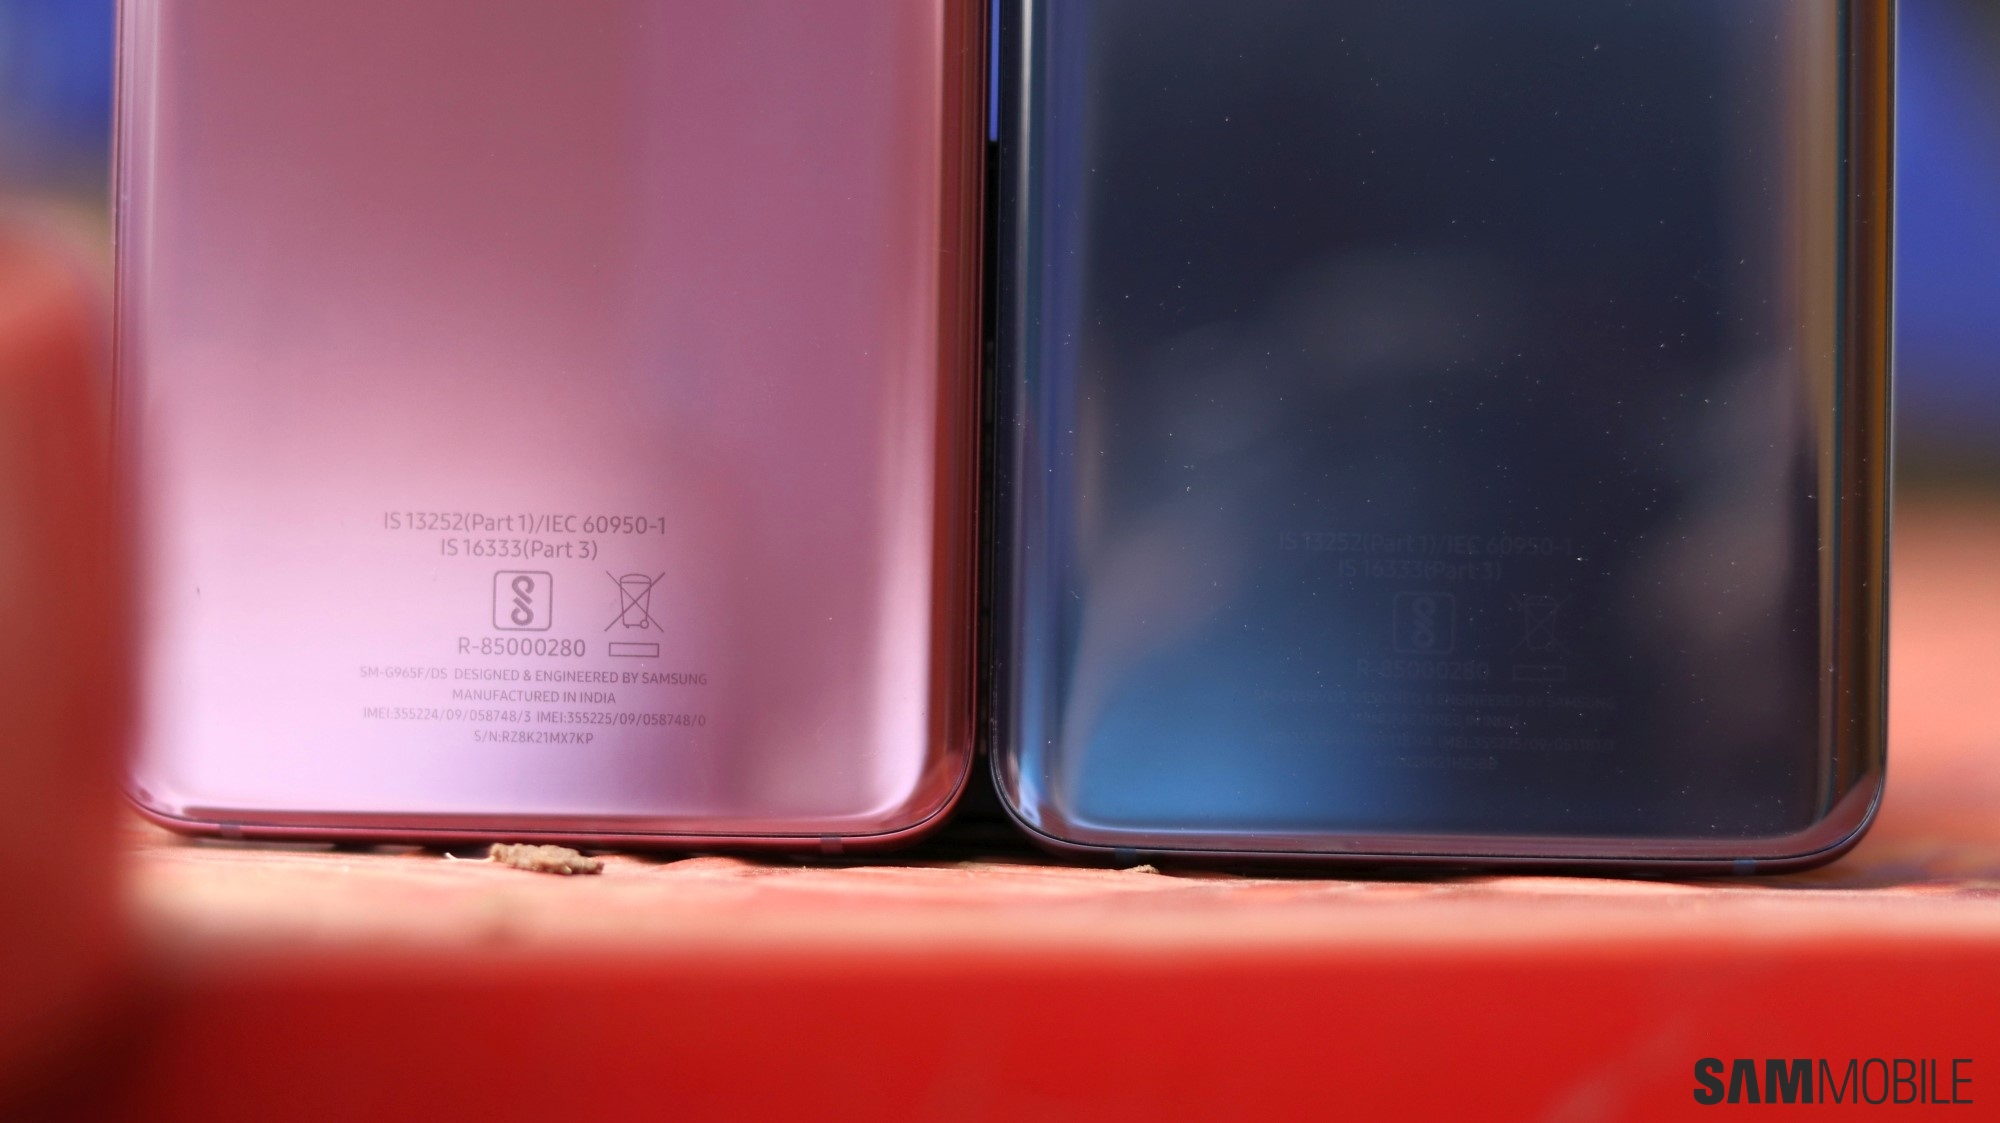 Samsung Galaxy S9 Coral Blue vs Lilac Purple: Side by side